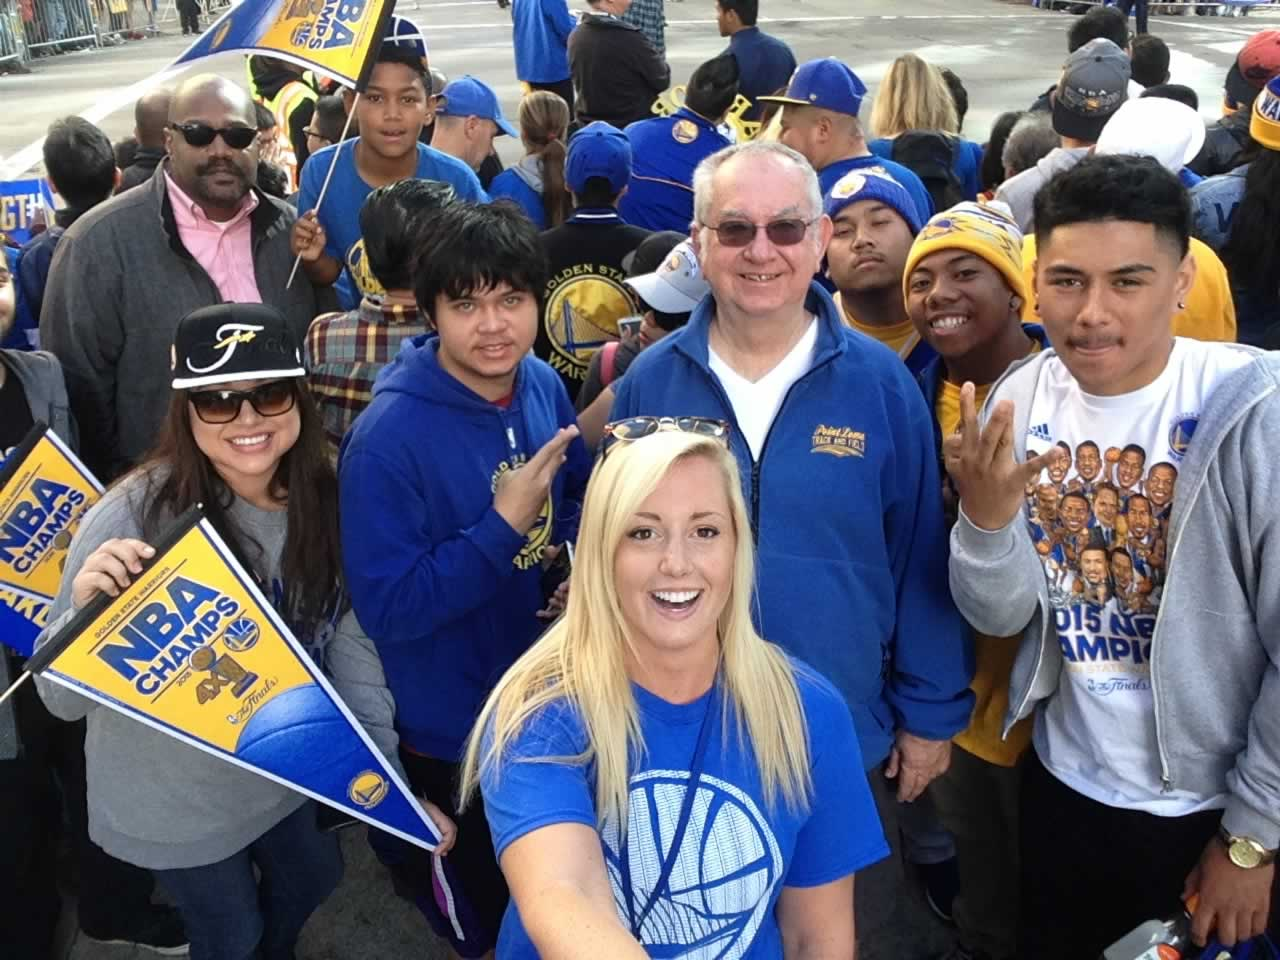 "<div class=""meta image-caption""><div class=""origin-logo origin-image none""><span>none</span></div><span class=""caption-text"">Dub Nation is out in full force for the Golden State Warriors parade in Oakland, Calif. on Friday, June 19, 2015. (KGO-TV)</span></div>"